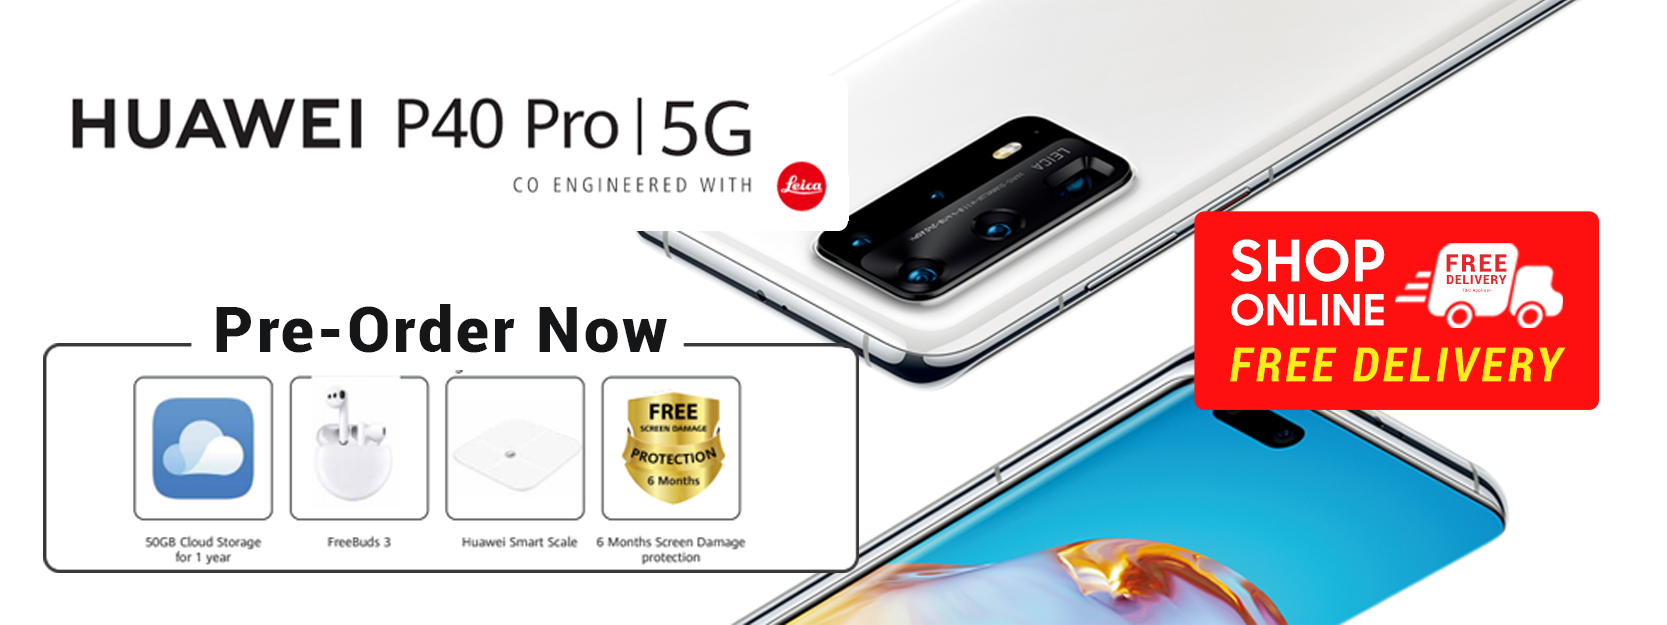 Huawei P40 Pro Pre-order in qatar